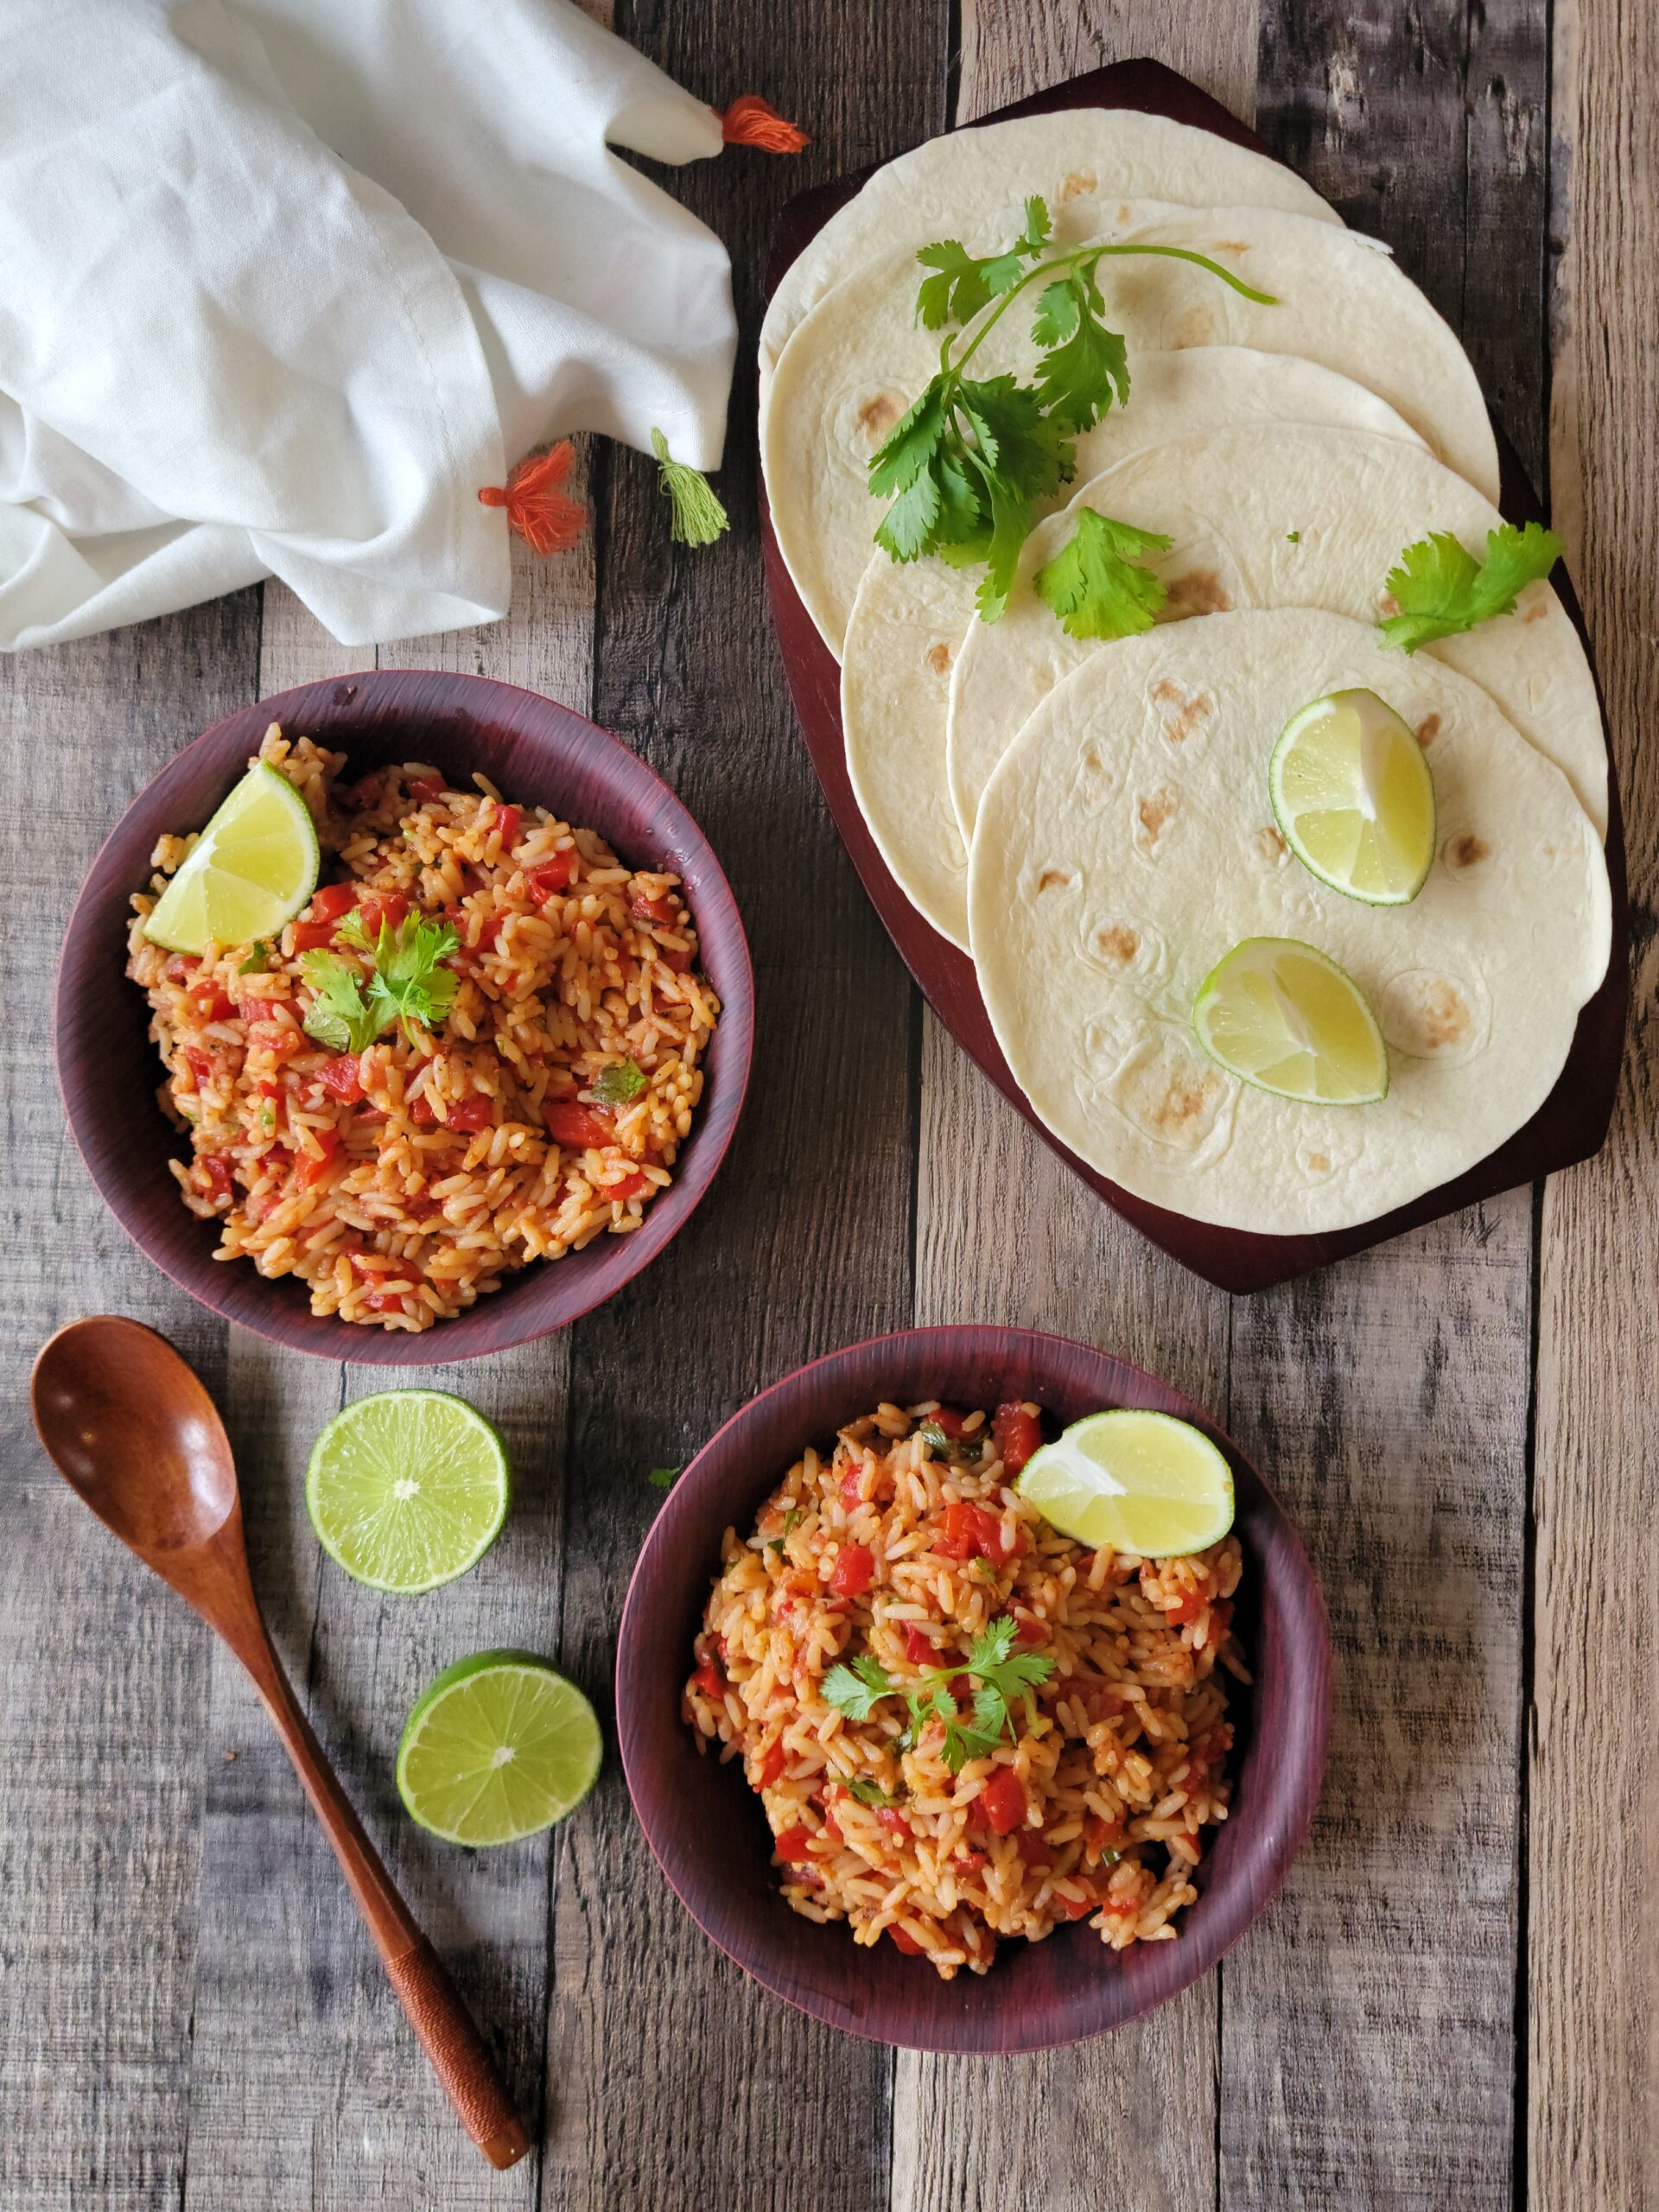 A table laid with Fire Roasted Mexican Rice, limes and tortillas